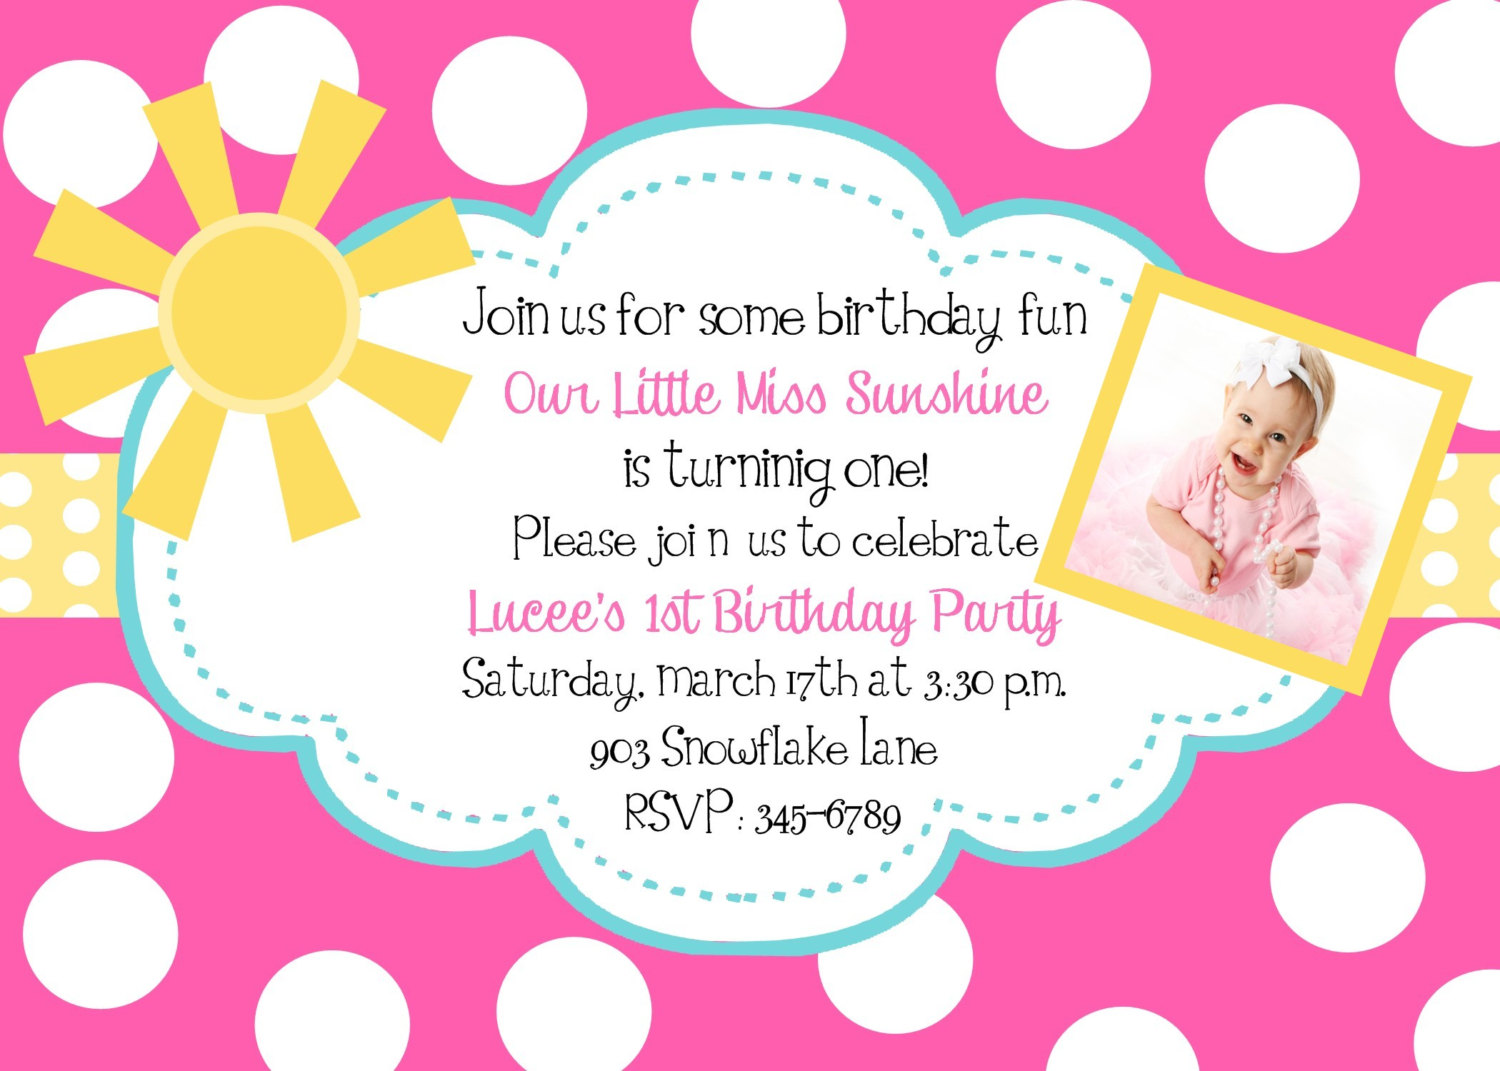 invitation quotes for first birthday party ; birthday-party-invitation-wording-And-the-Eingriff-Party-and-great-ideas-1